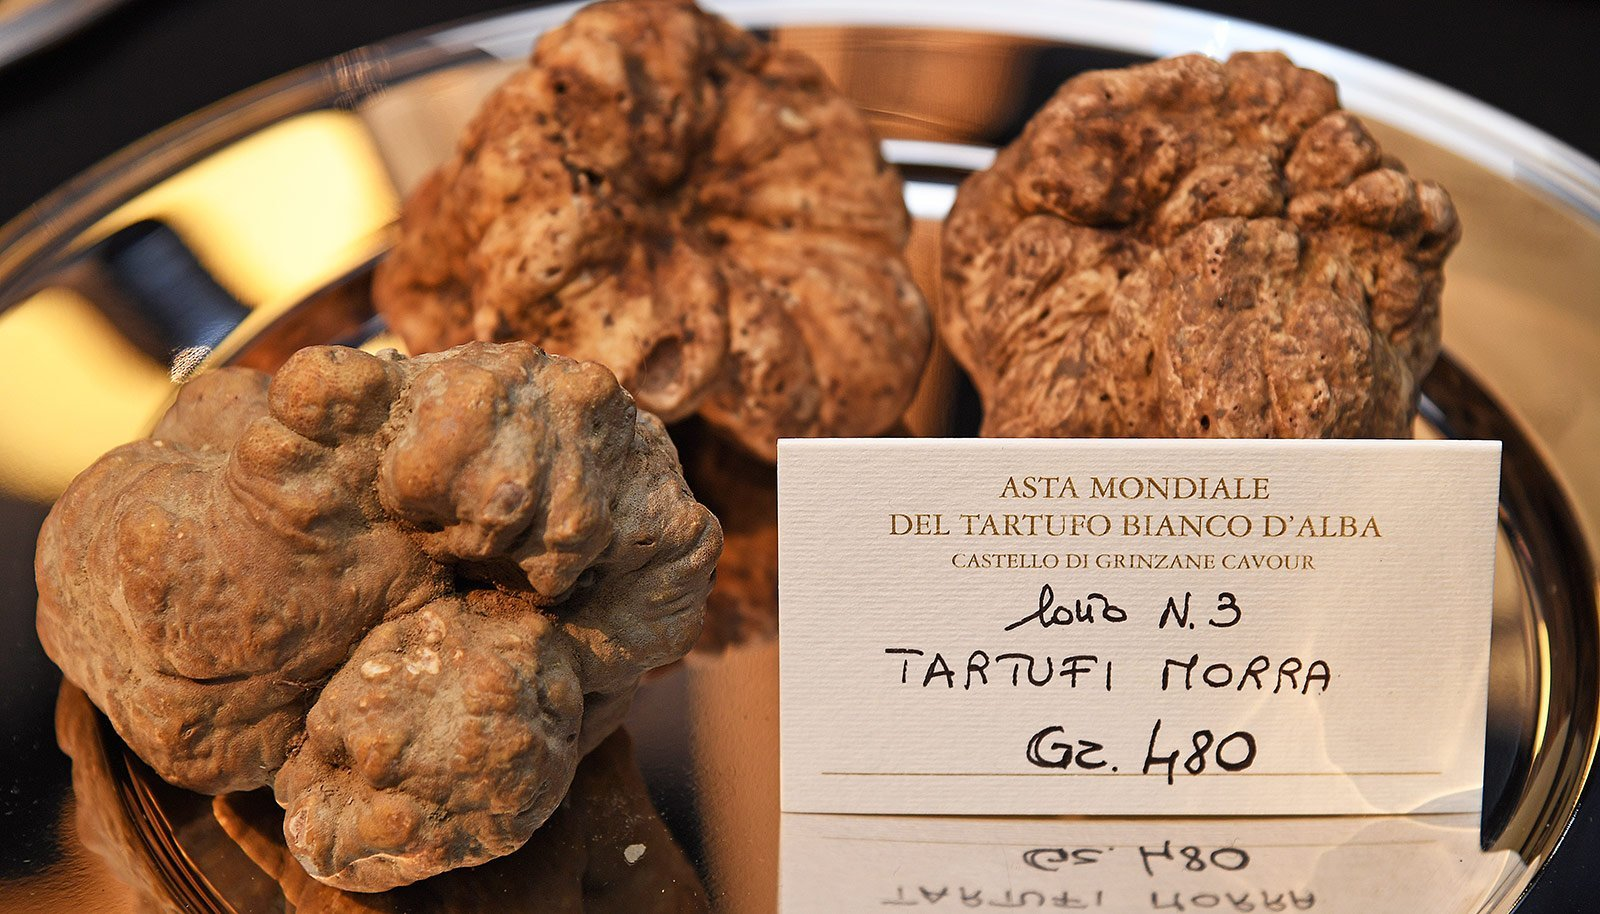 International Alba White Truffle Auction